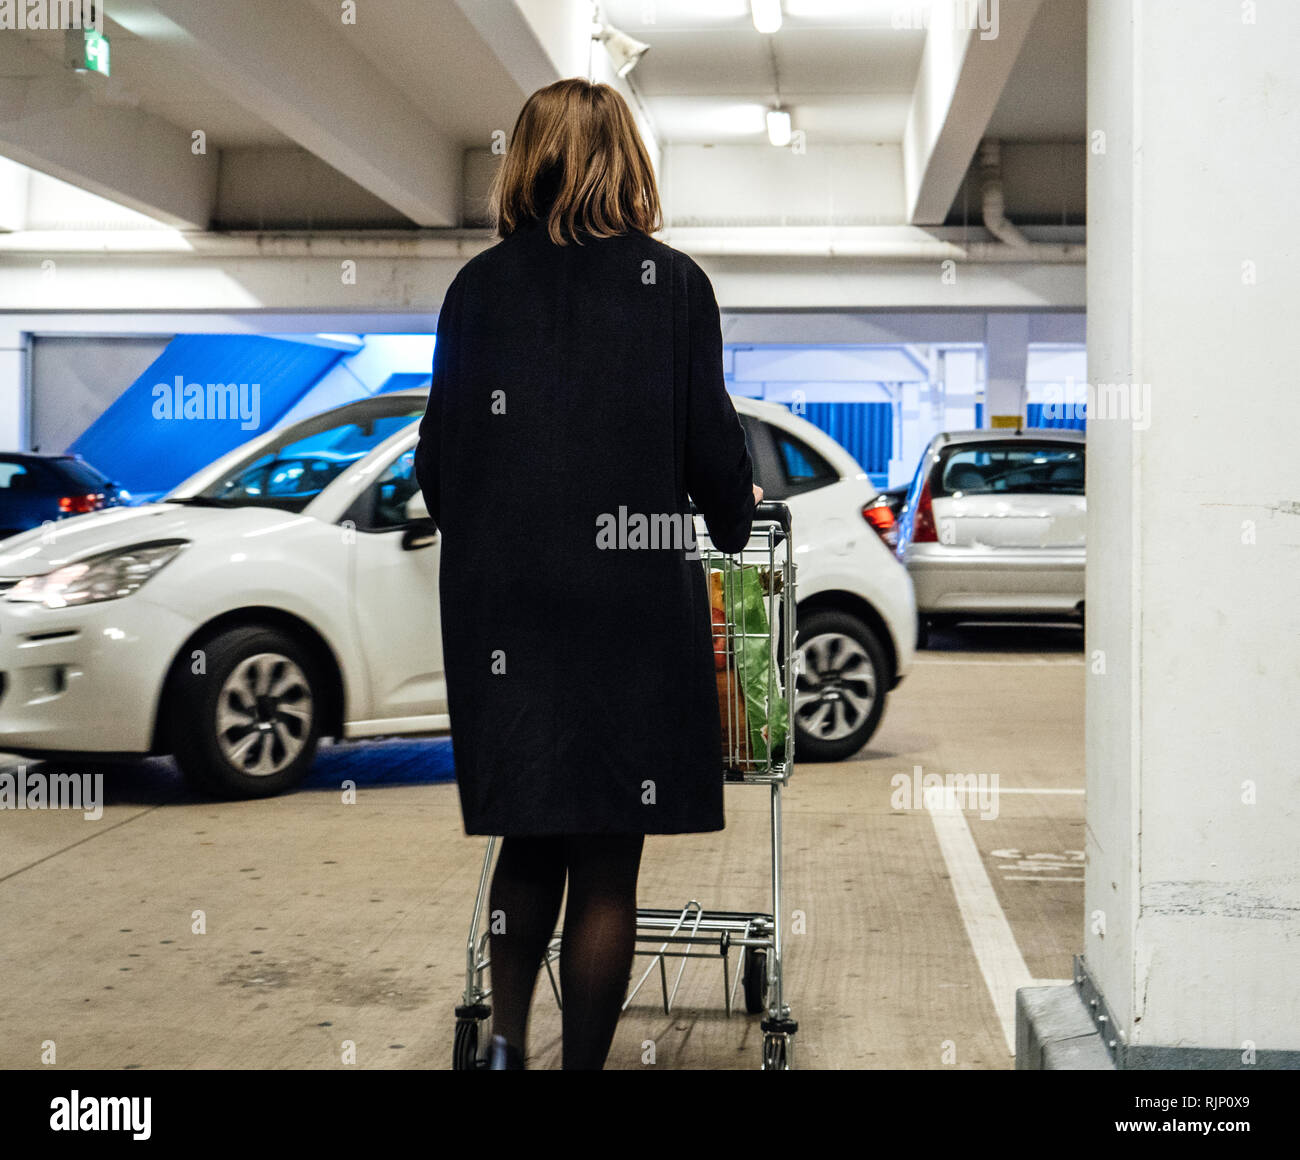 Rear view of woman pushing shopping trolley to car parking with bags with groceries parking lot - Stock Image